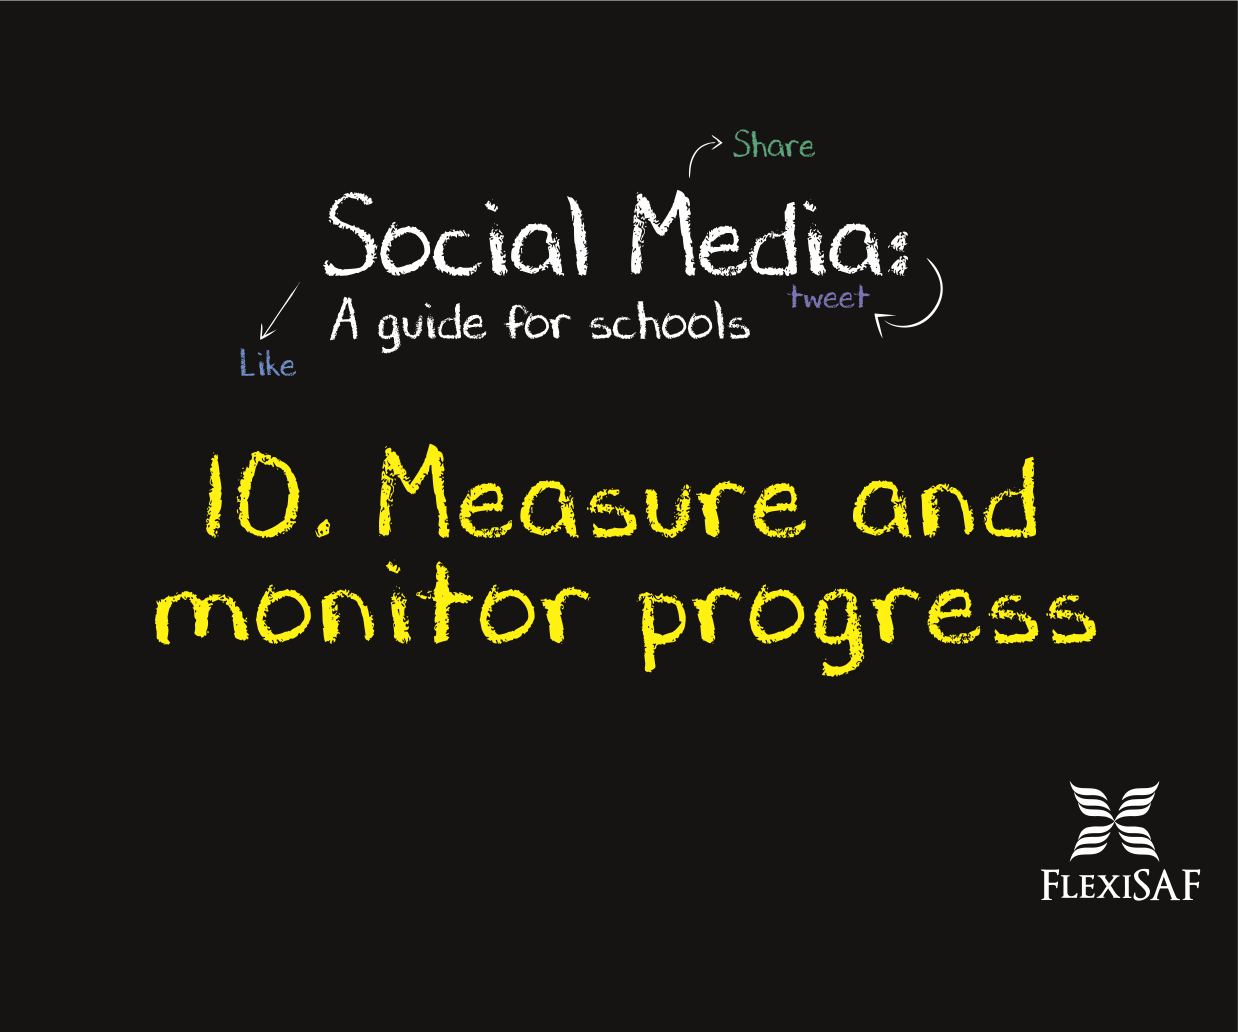 10. Measure and monitor progress